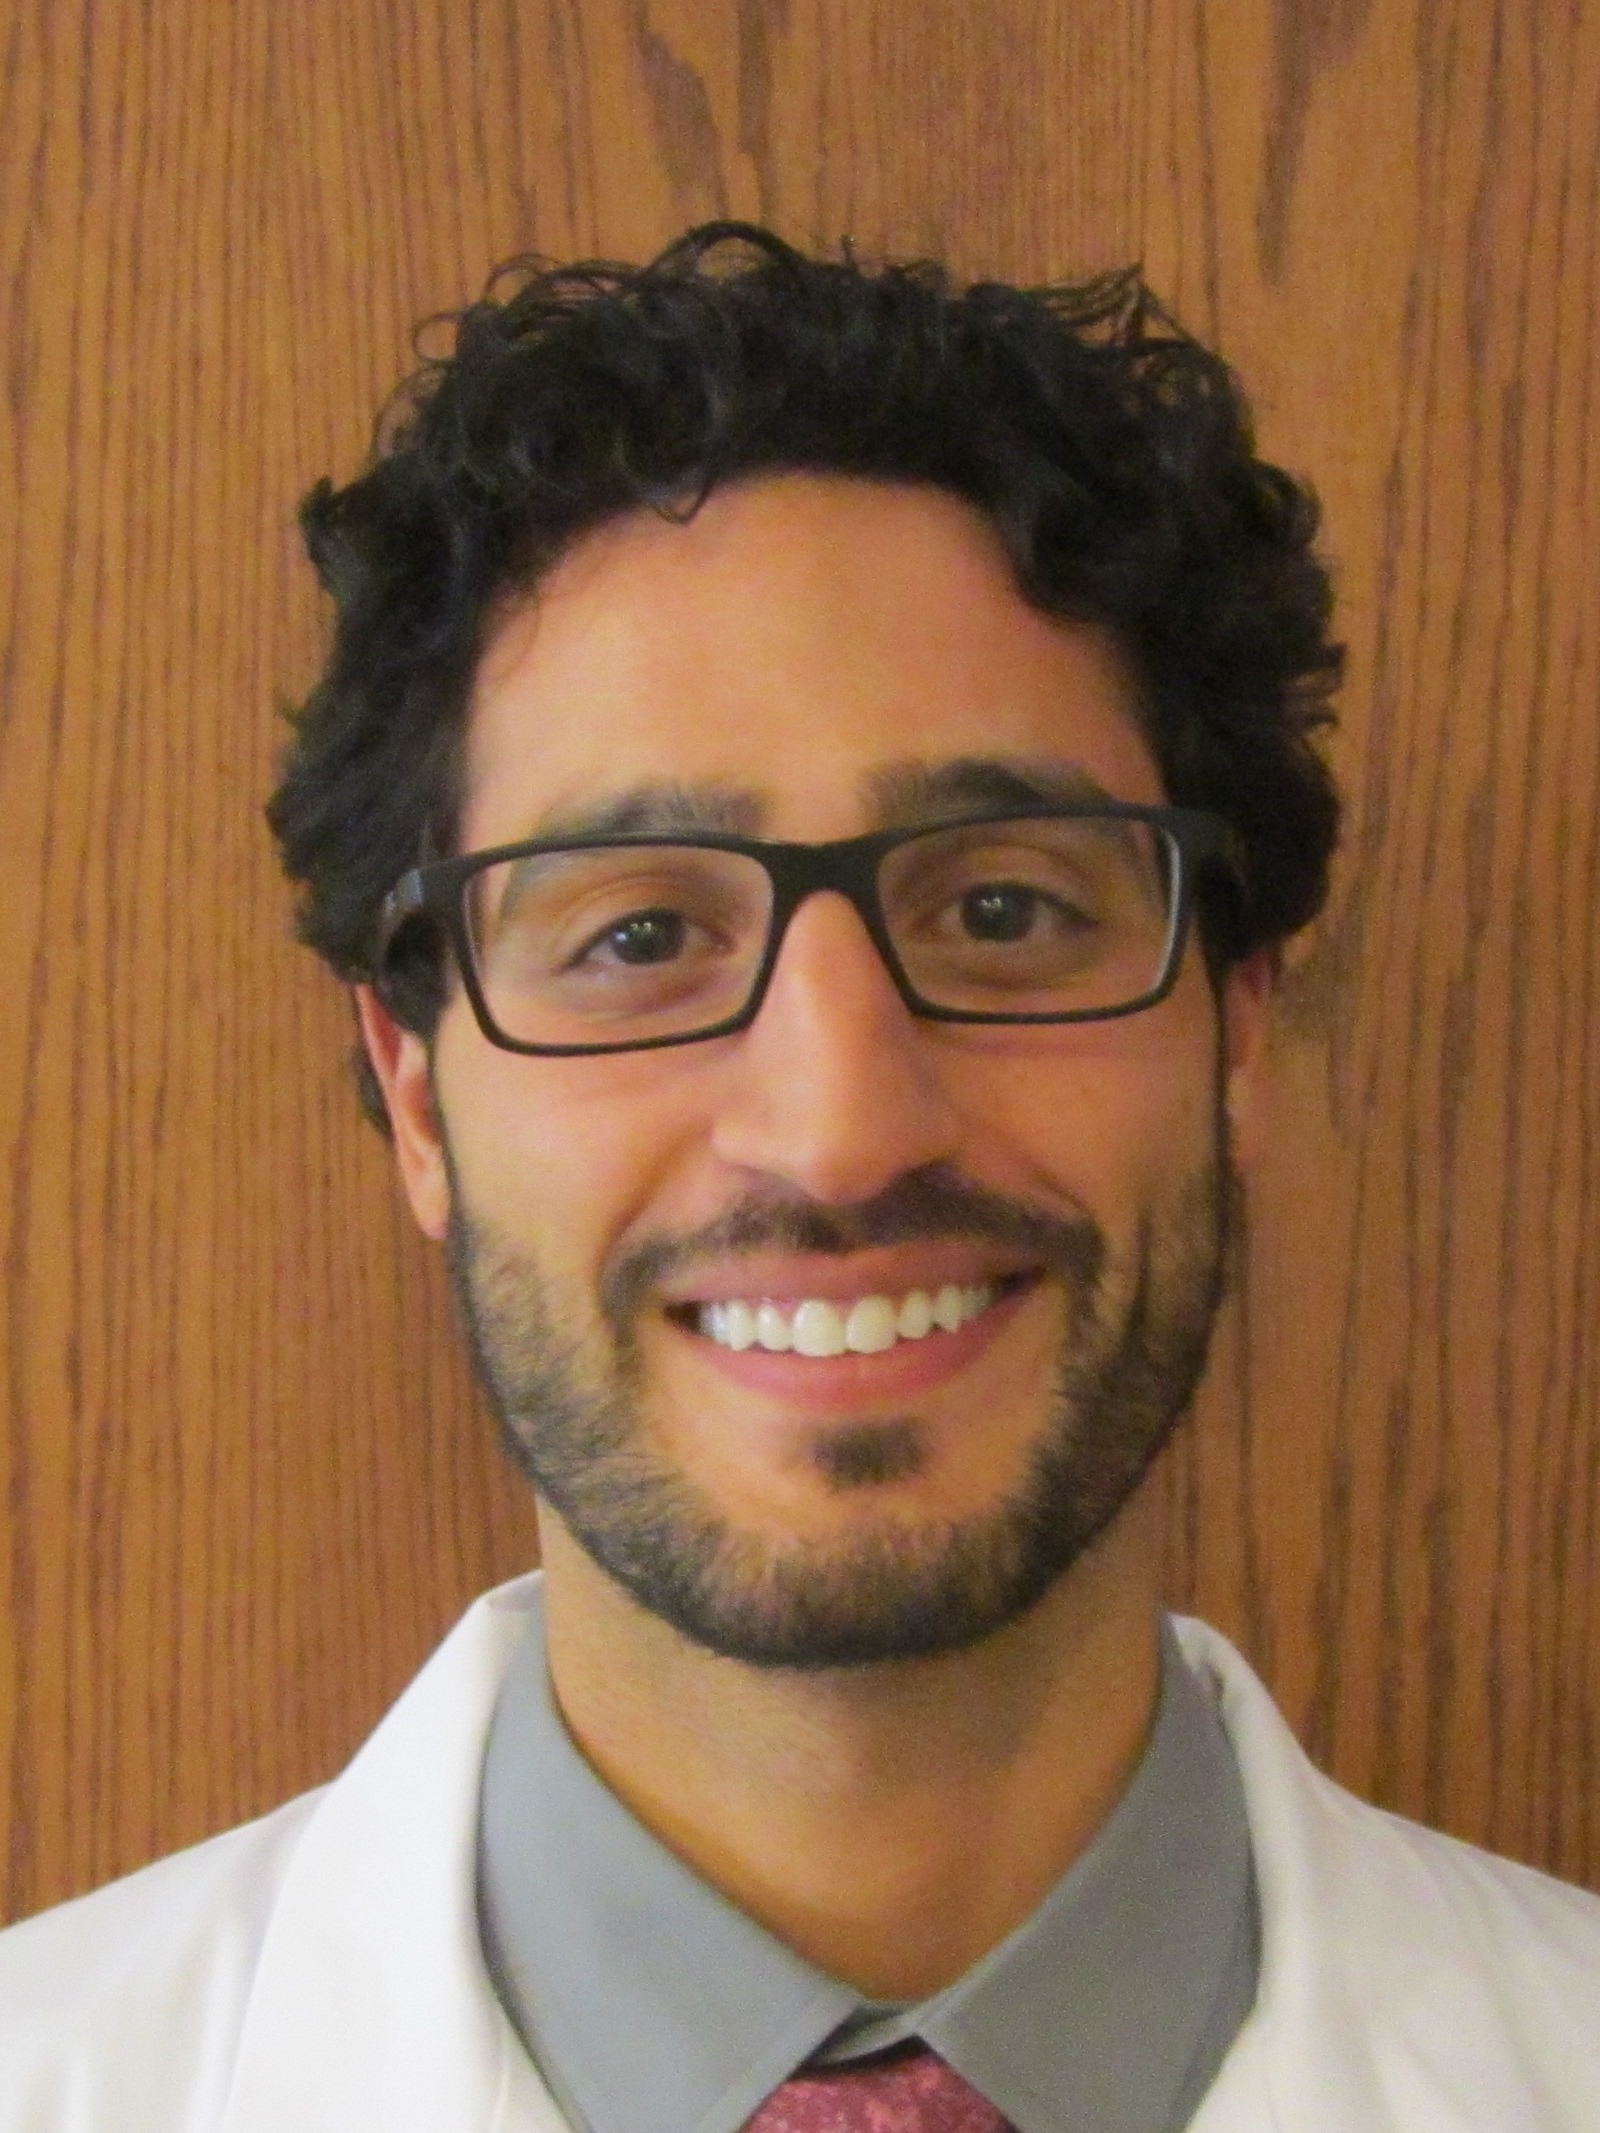 Housam Tahboub, MD - Hometown: Grand Blanc, MichiganUndergraduate: University of Michigan, FlintMedical School: Central Michigan UniversityHobbies:all the sports, lifting both physically and cosmetically, and my sweet pup Brodie